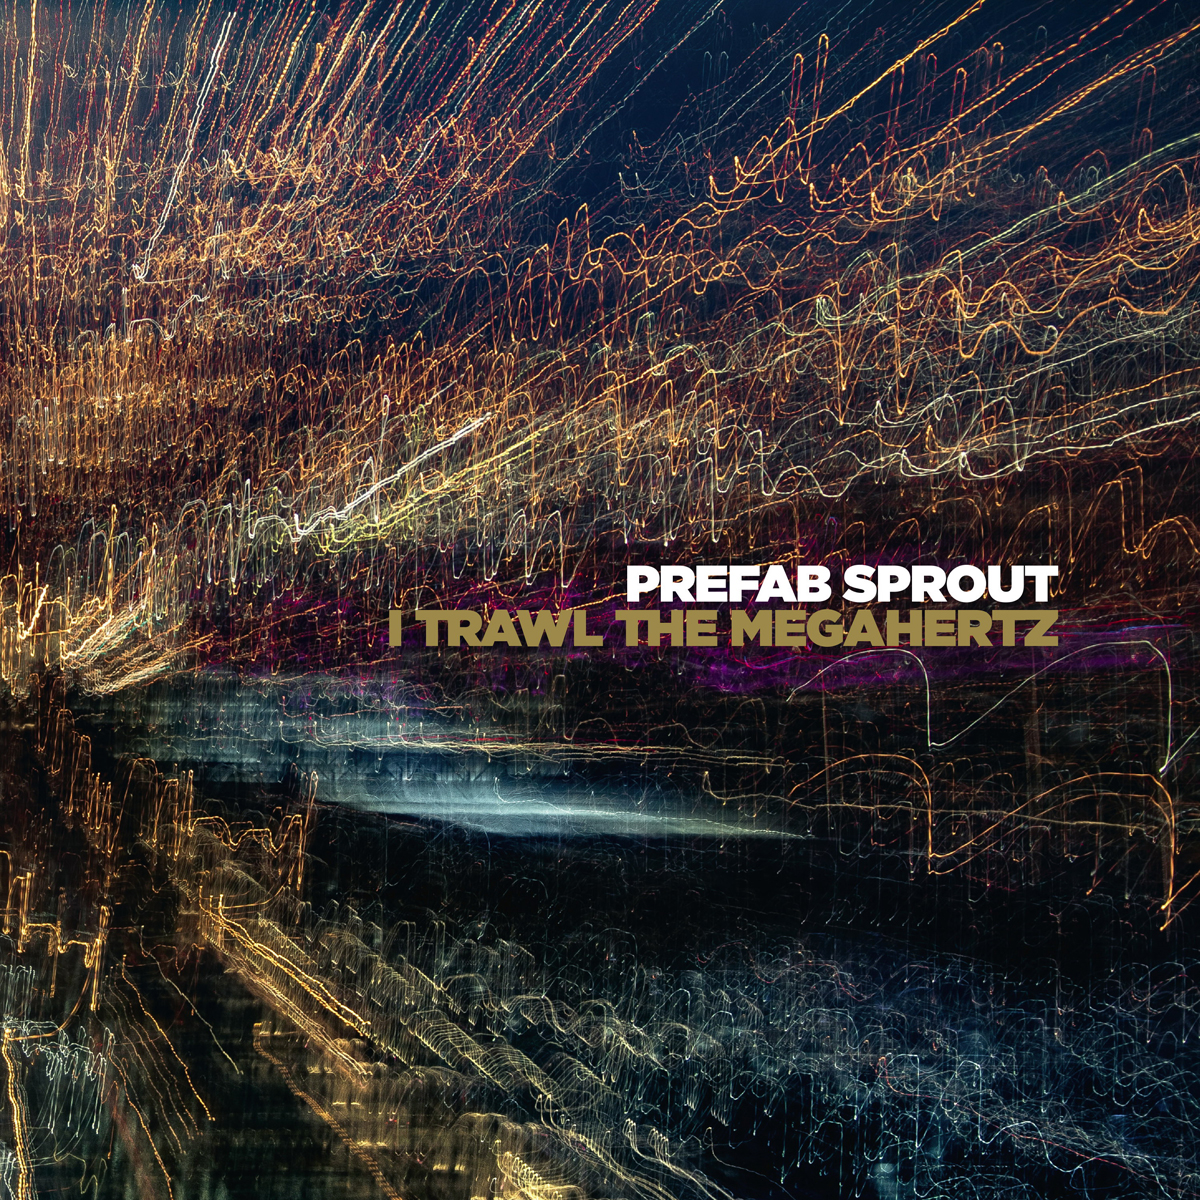 Prefab Sprout Prefab Sprout. I Trawl The Megahertz (2 LP) prefab sprout prefab sprout steve mcqueen 180 gr